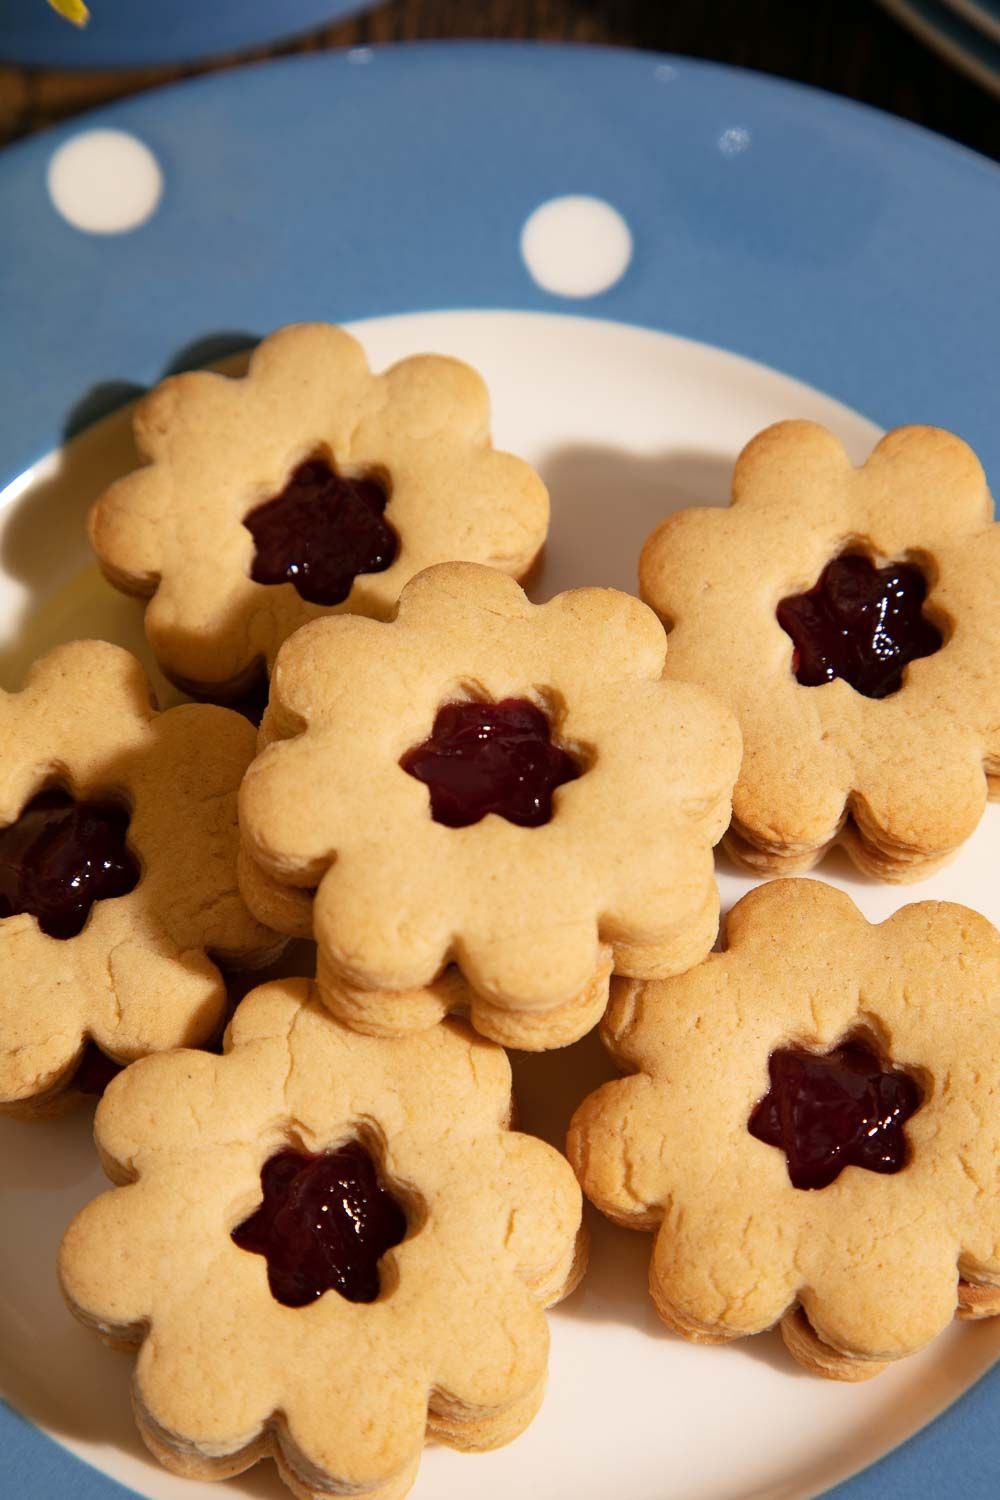 Flower shaped jammy dodgers on a blue and white spotty plate.